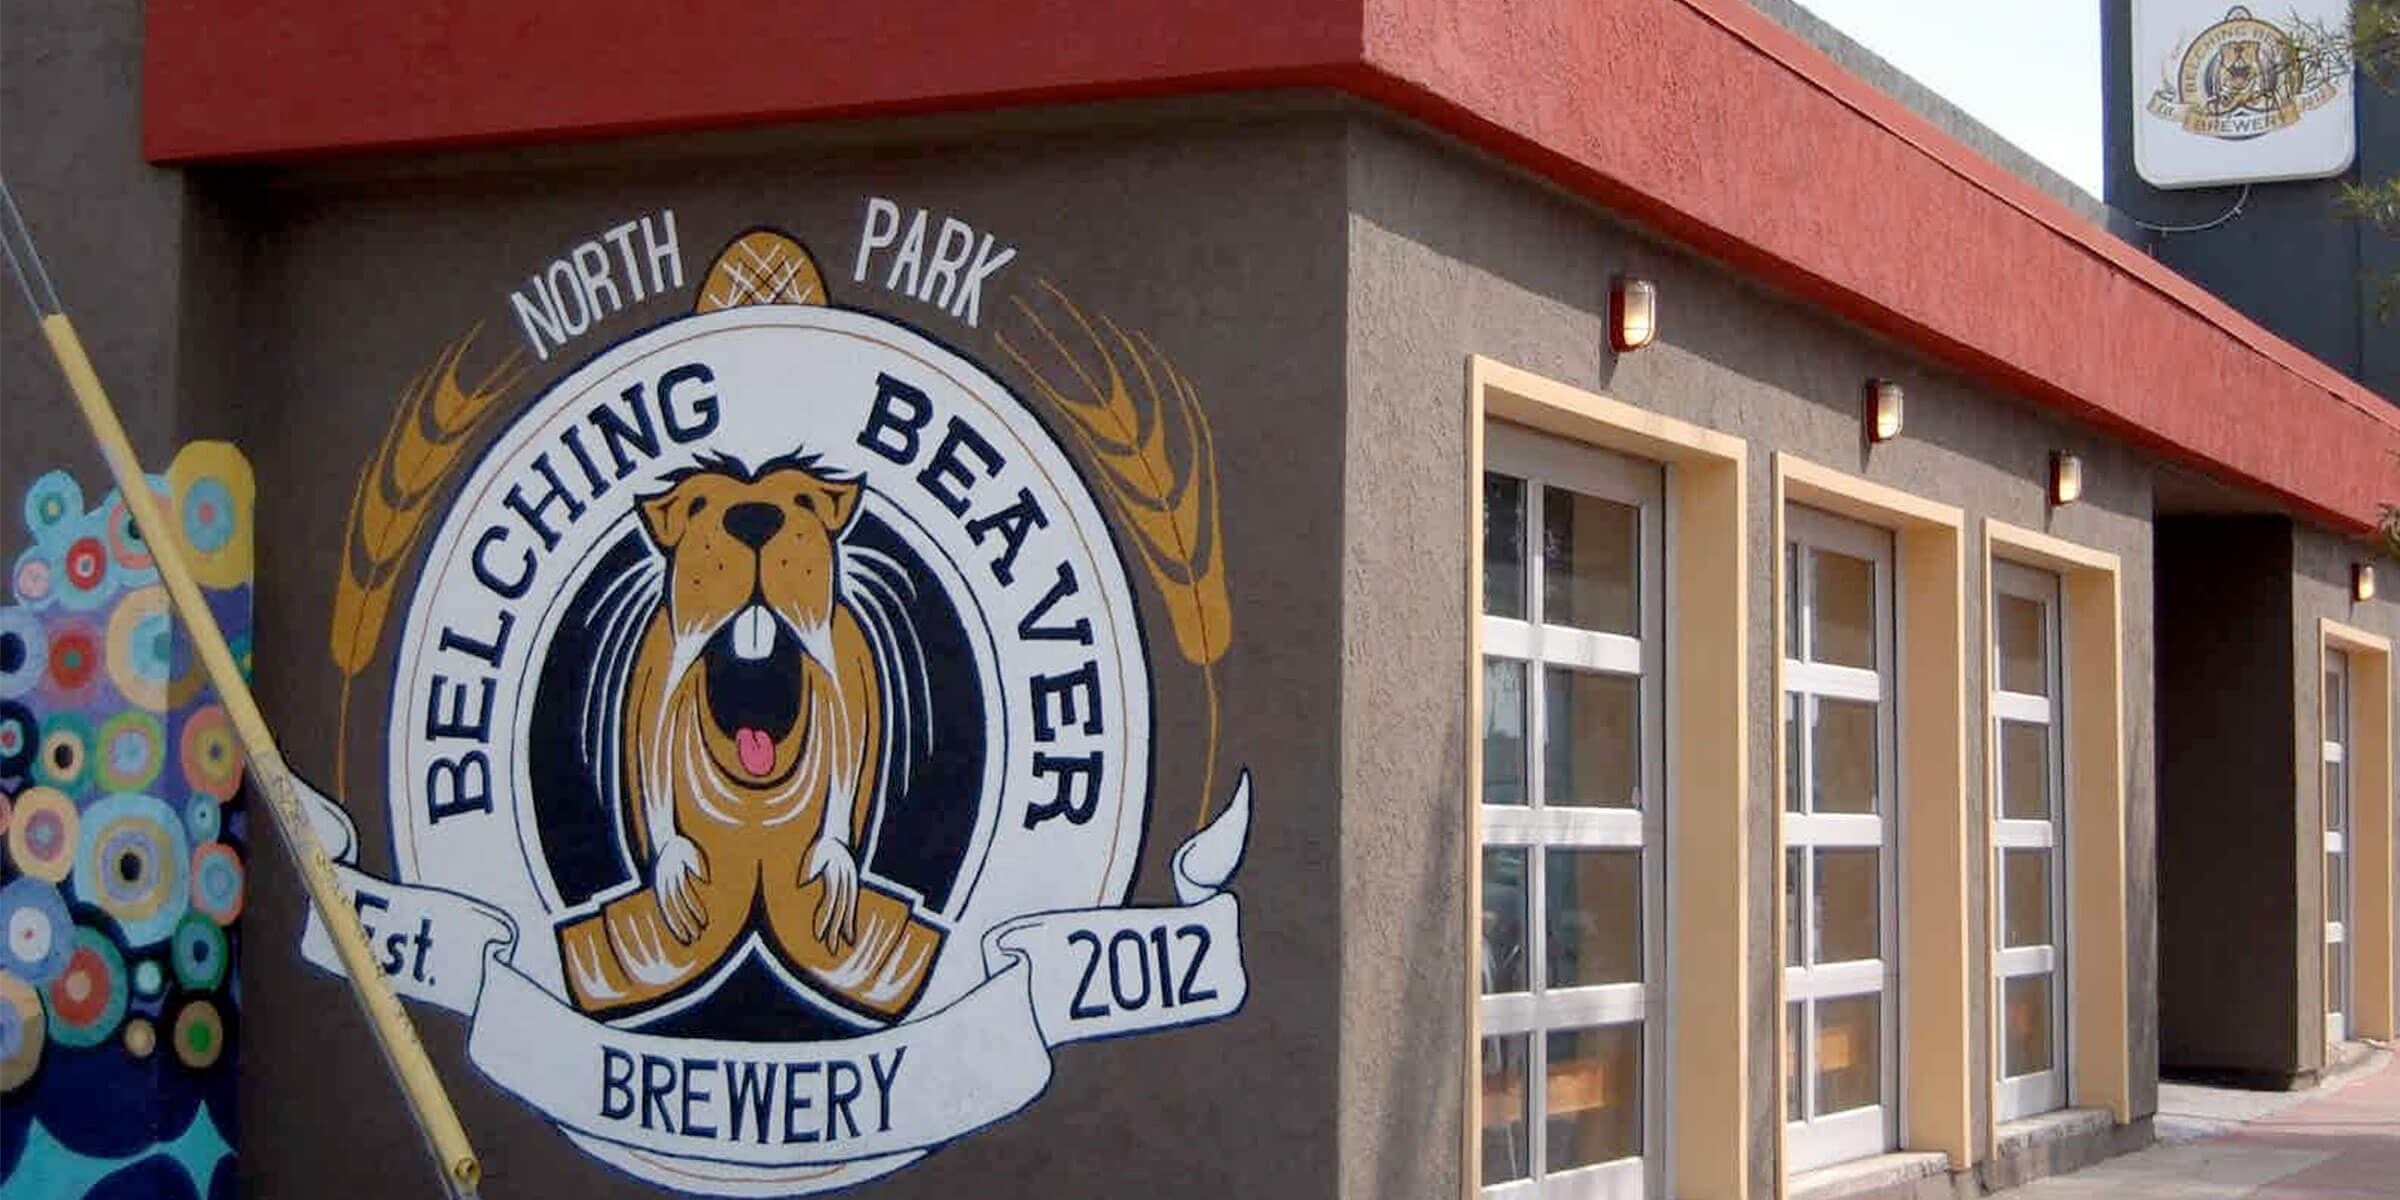 Outside the entrance to the Belching Beaver Brewery taproom in the North Park neighborhood of San Diego, California